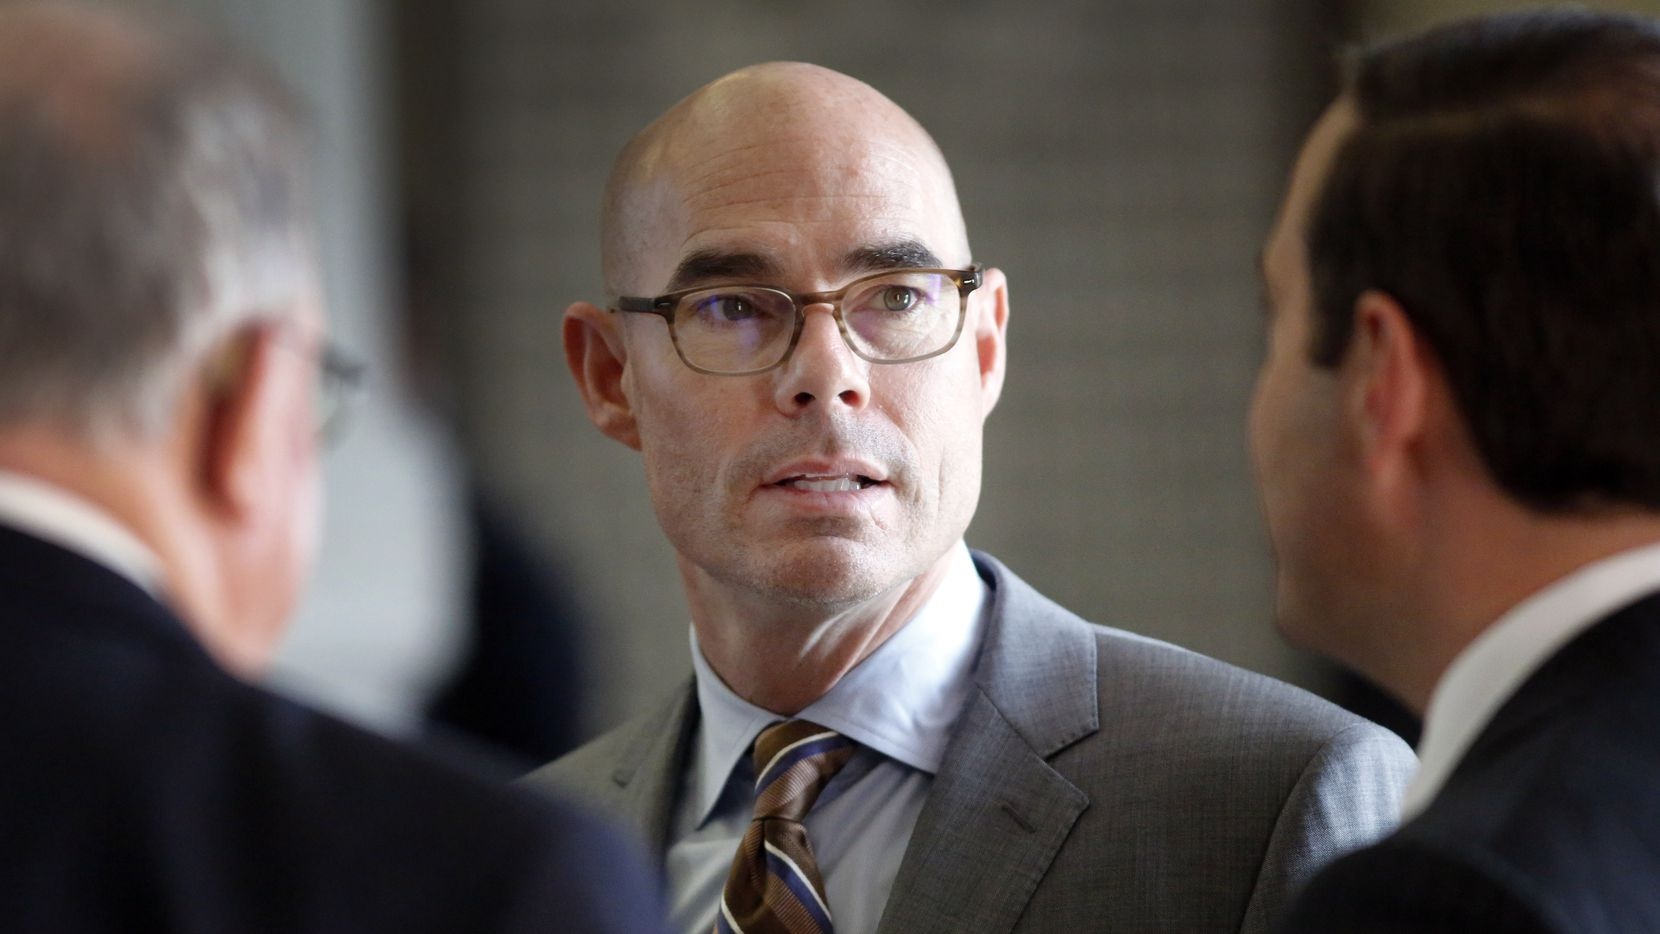 Texas House Speaker Dennis Bonnen (center) was accused by a conservative political activist of targeting fellow Republicans in the primary.